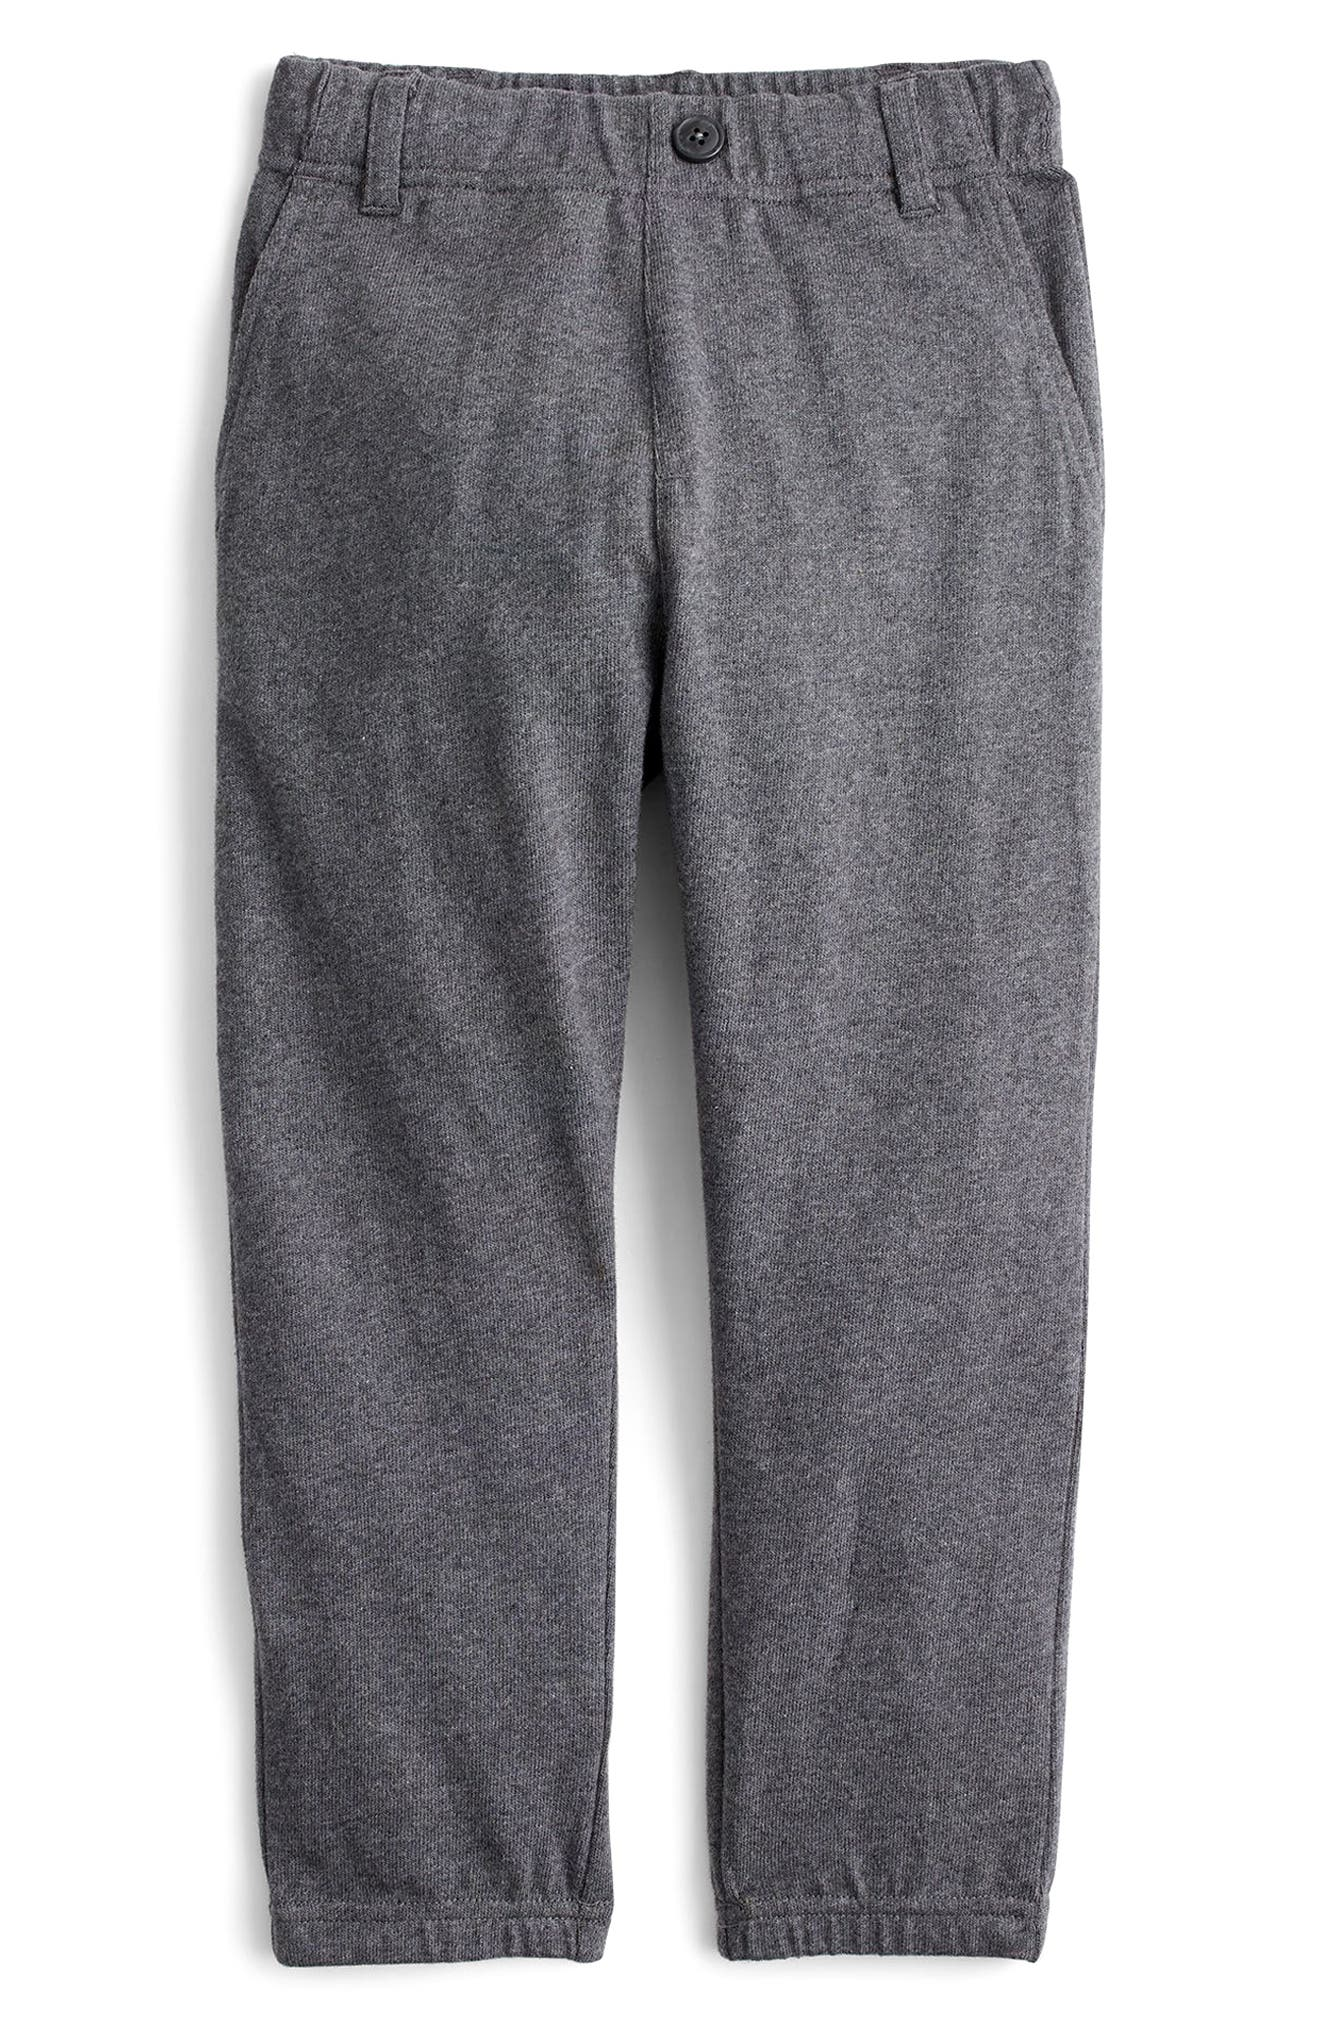 Trouser Sweatpants,                         Main,                         color, Heather Charcoal